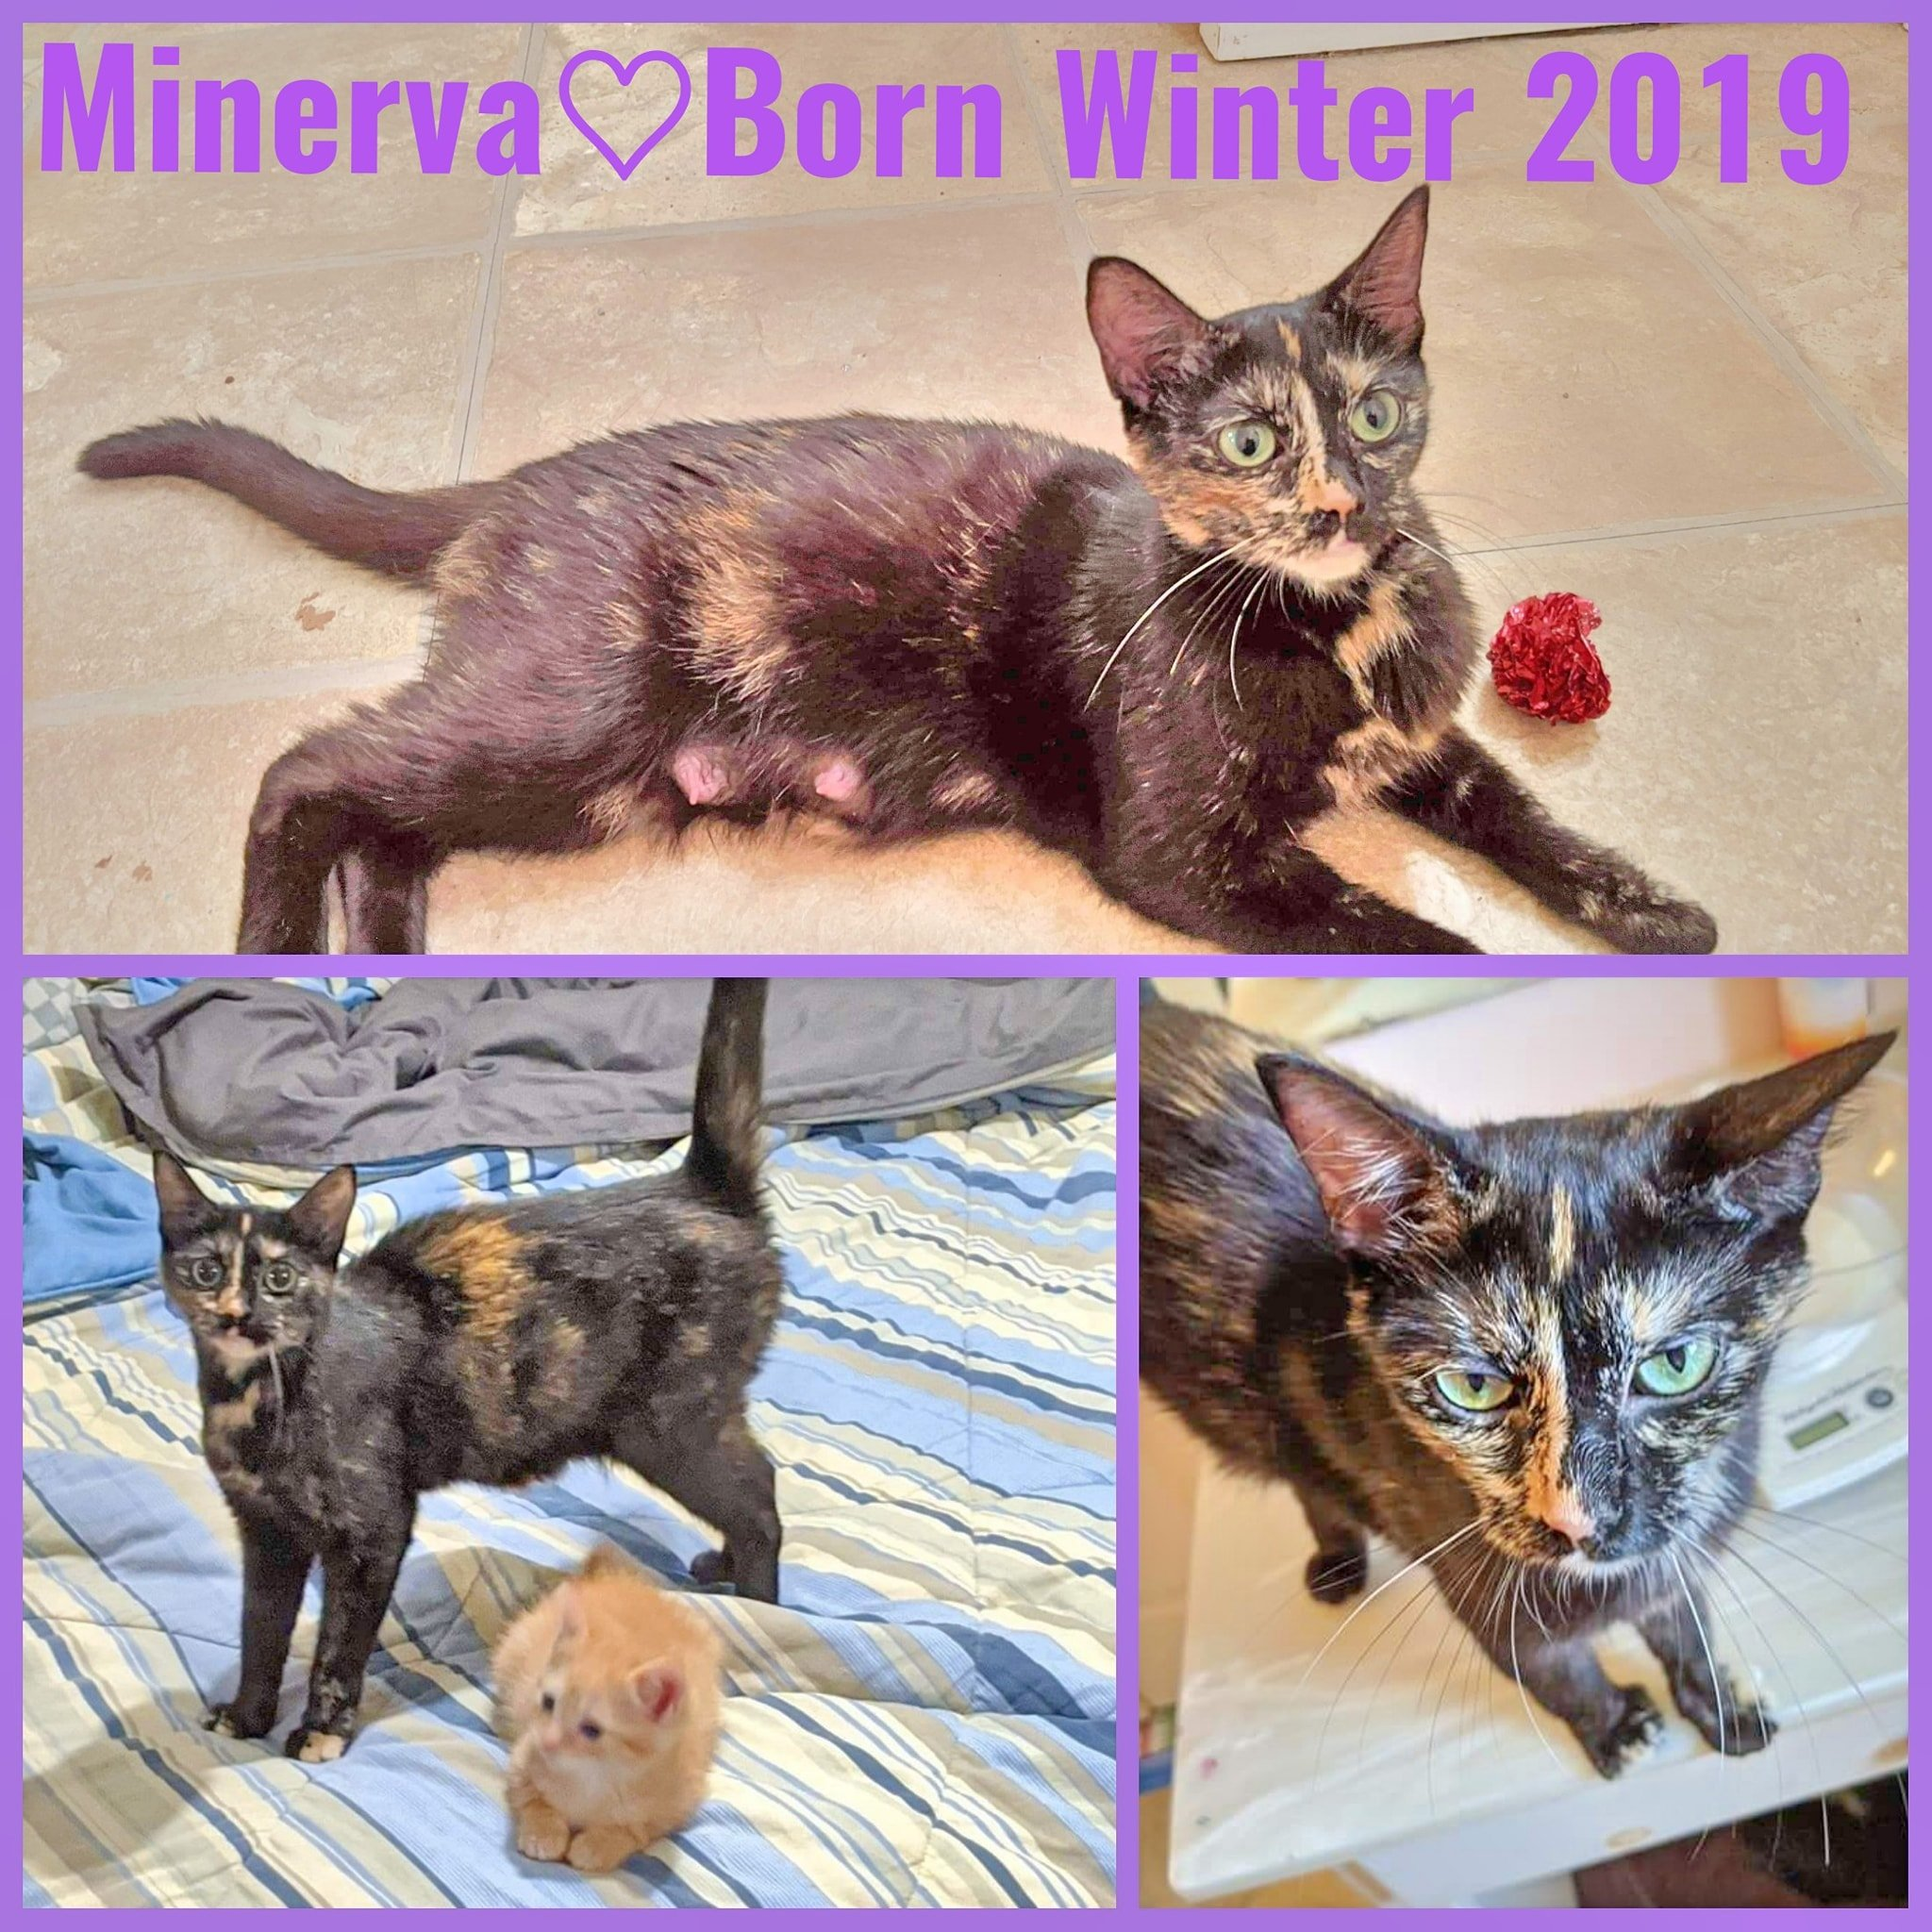 Minerva-Female-Born Winter 2019